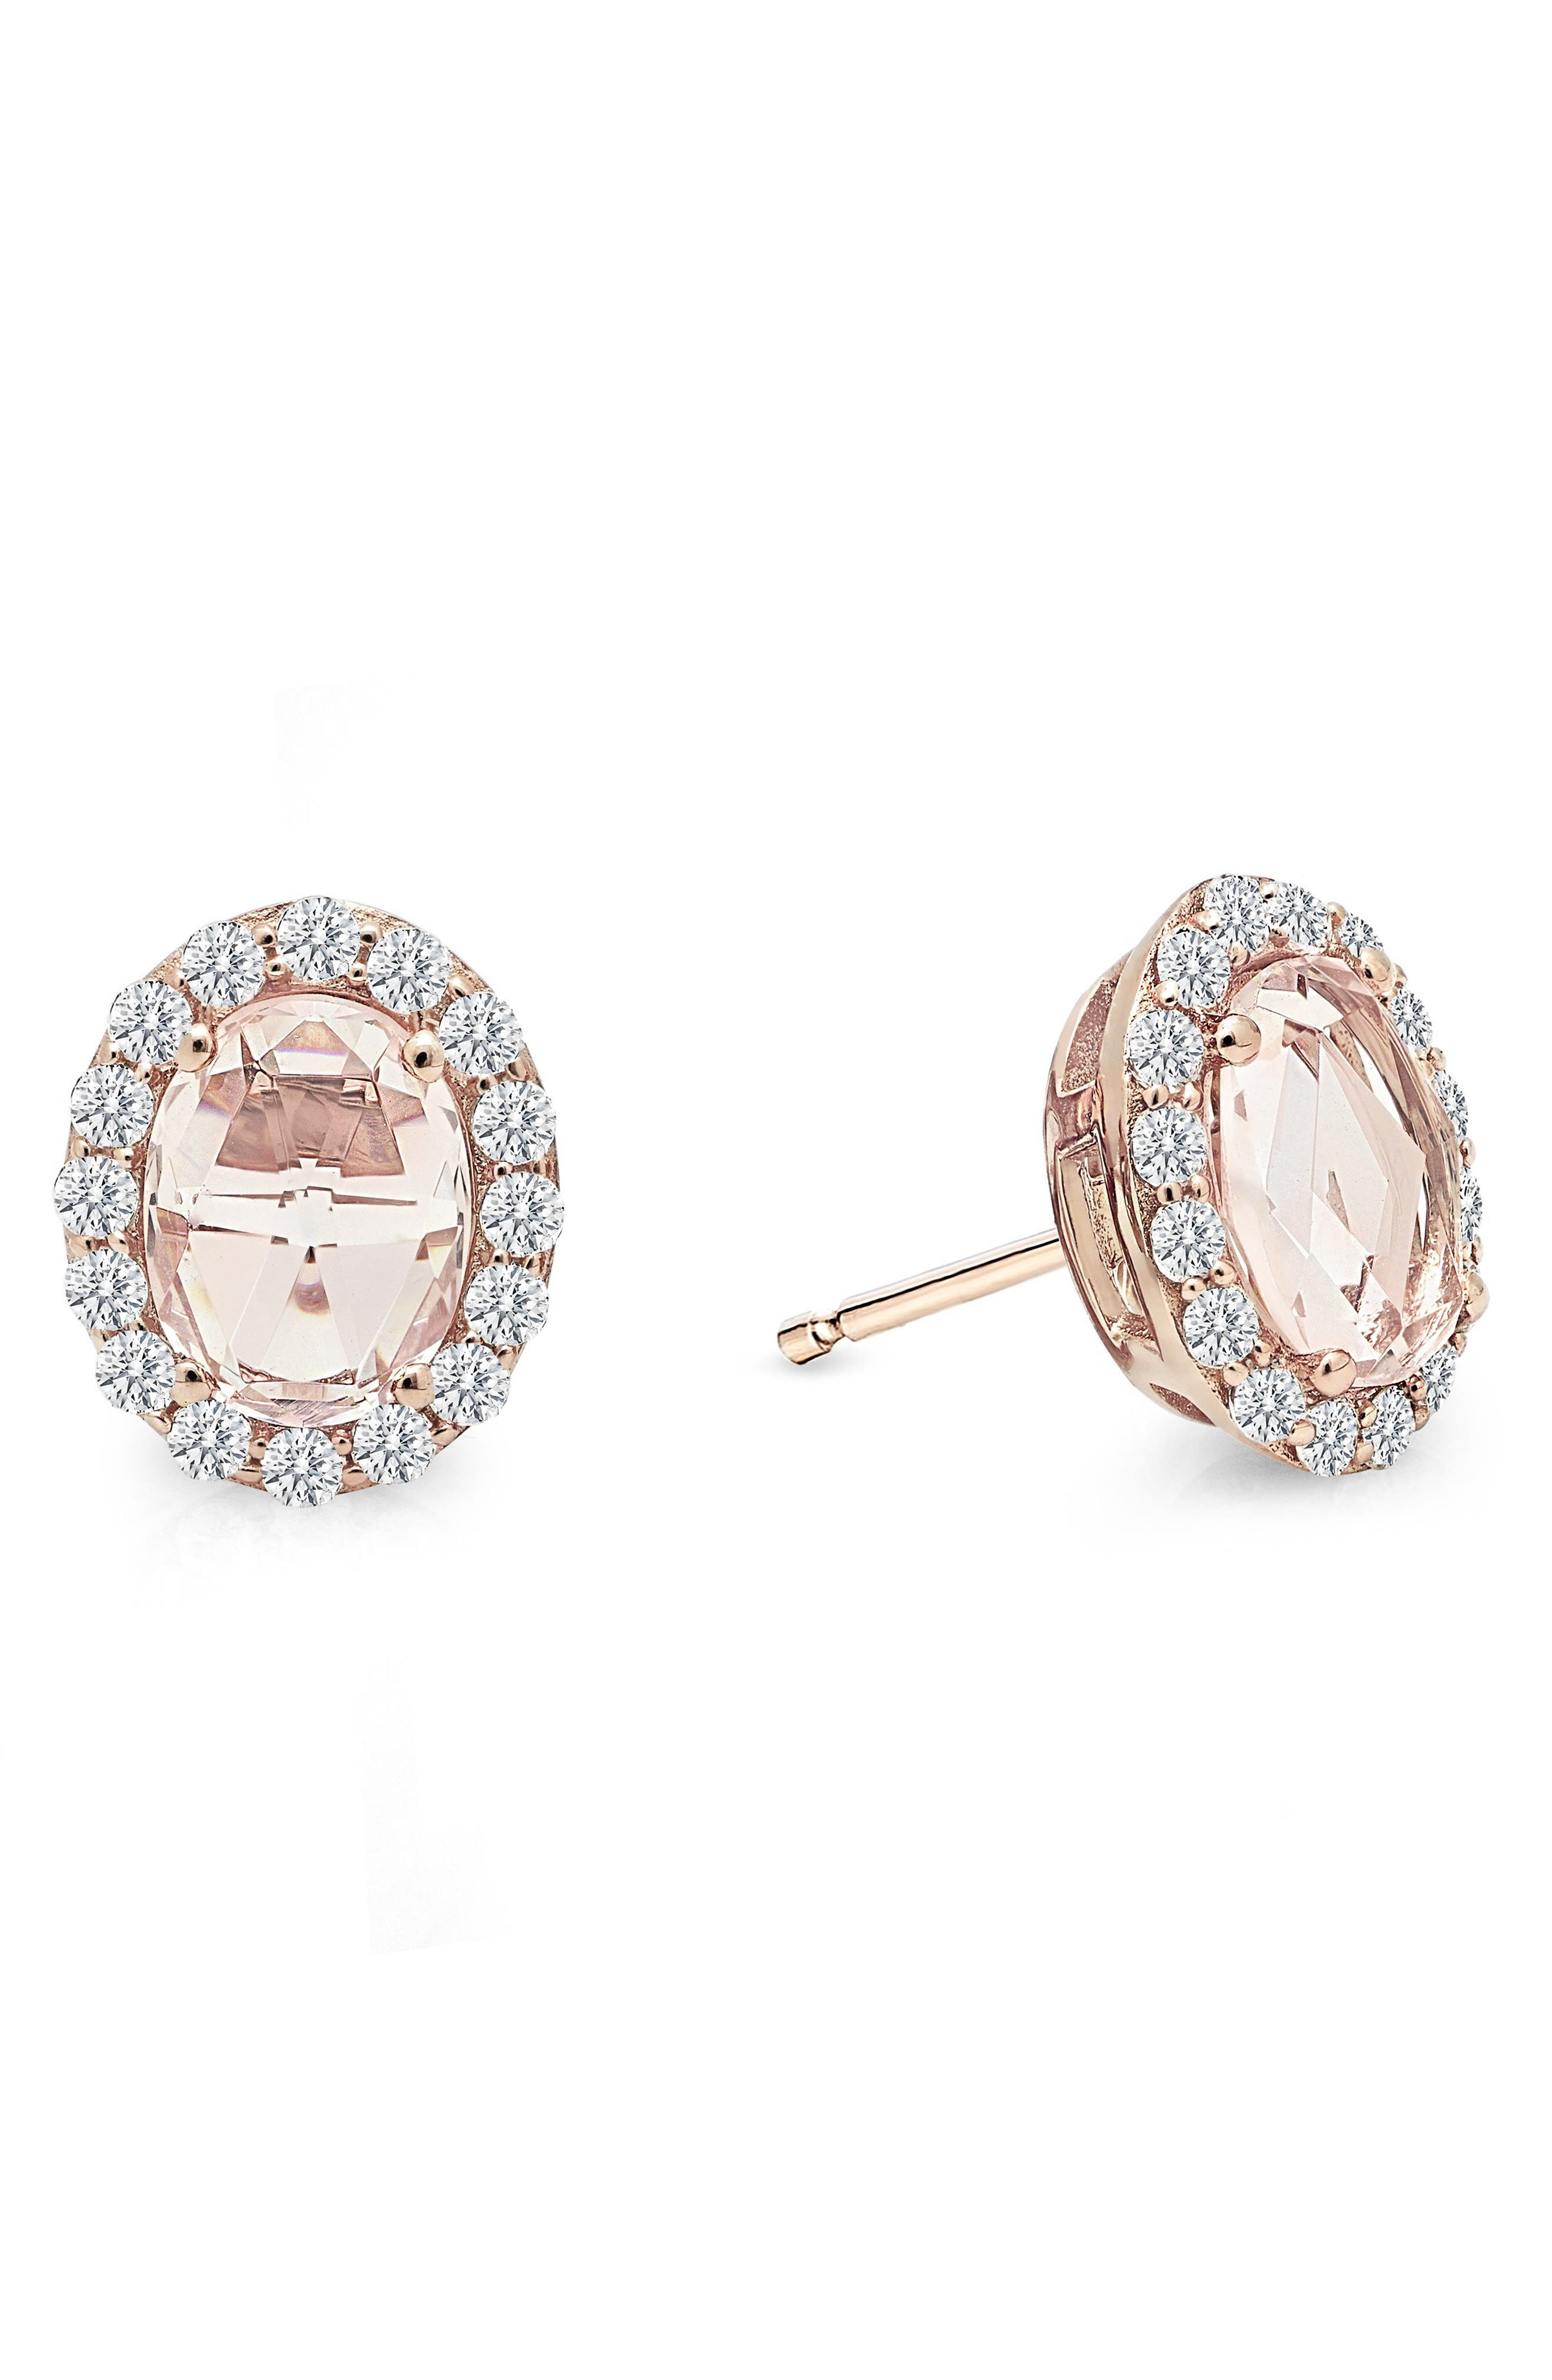 Simulated Diamond Halo Earrings,                         Main,                         color, Pink / Rose Gold